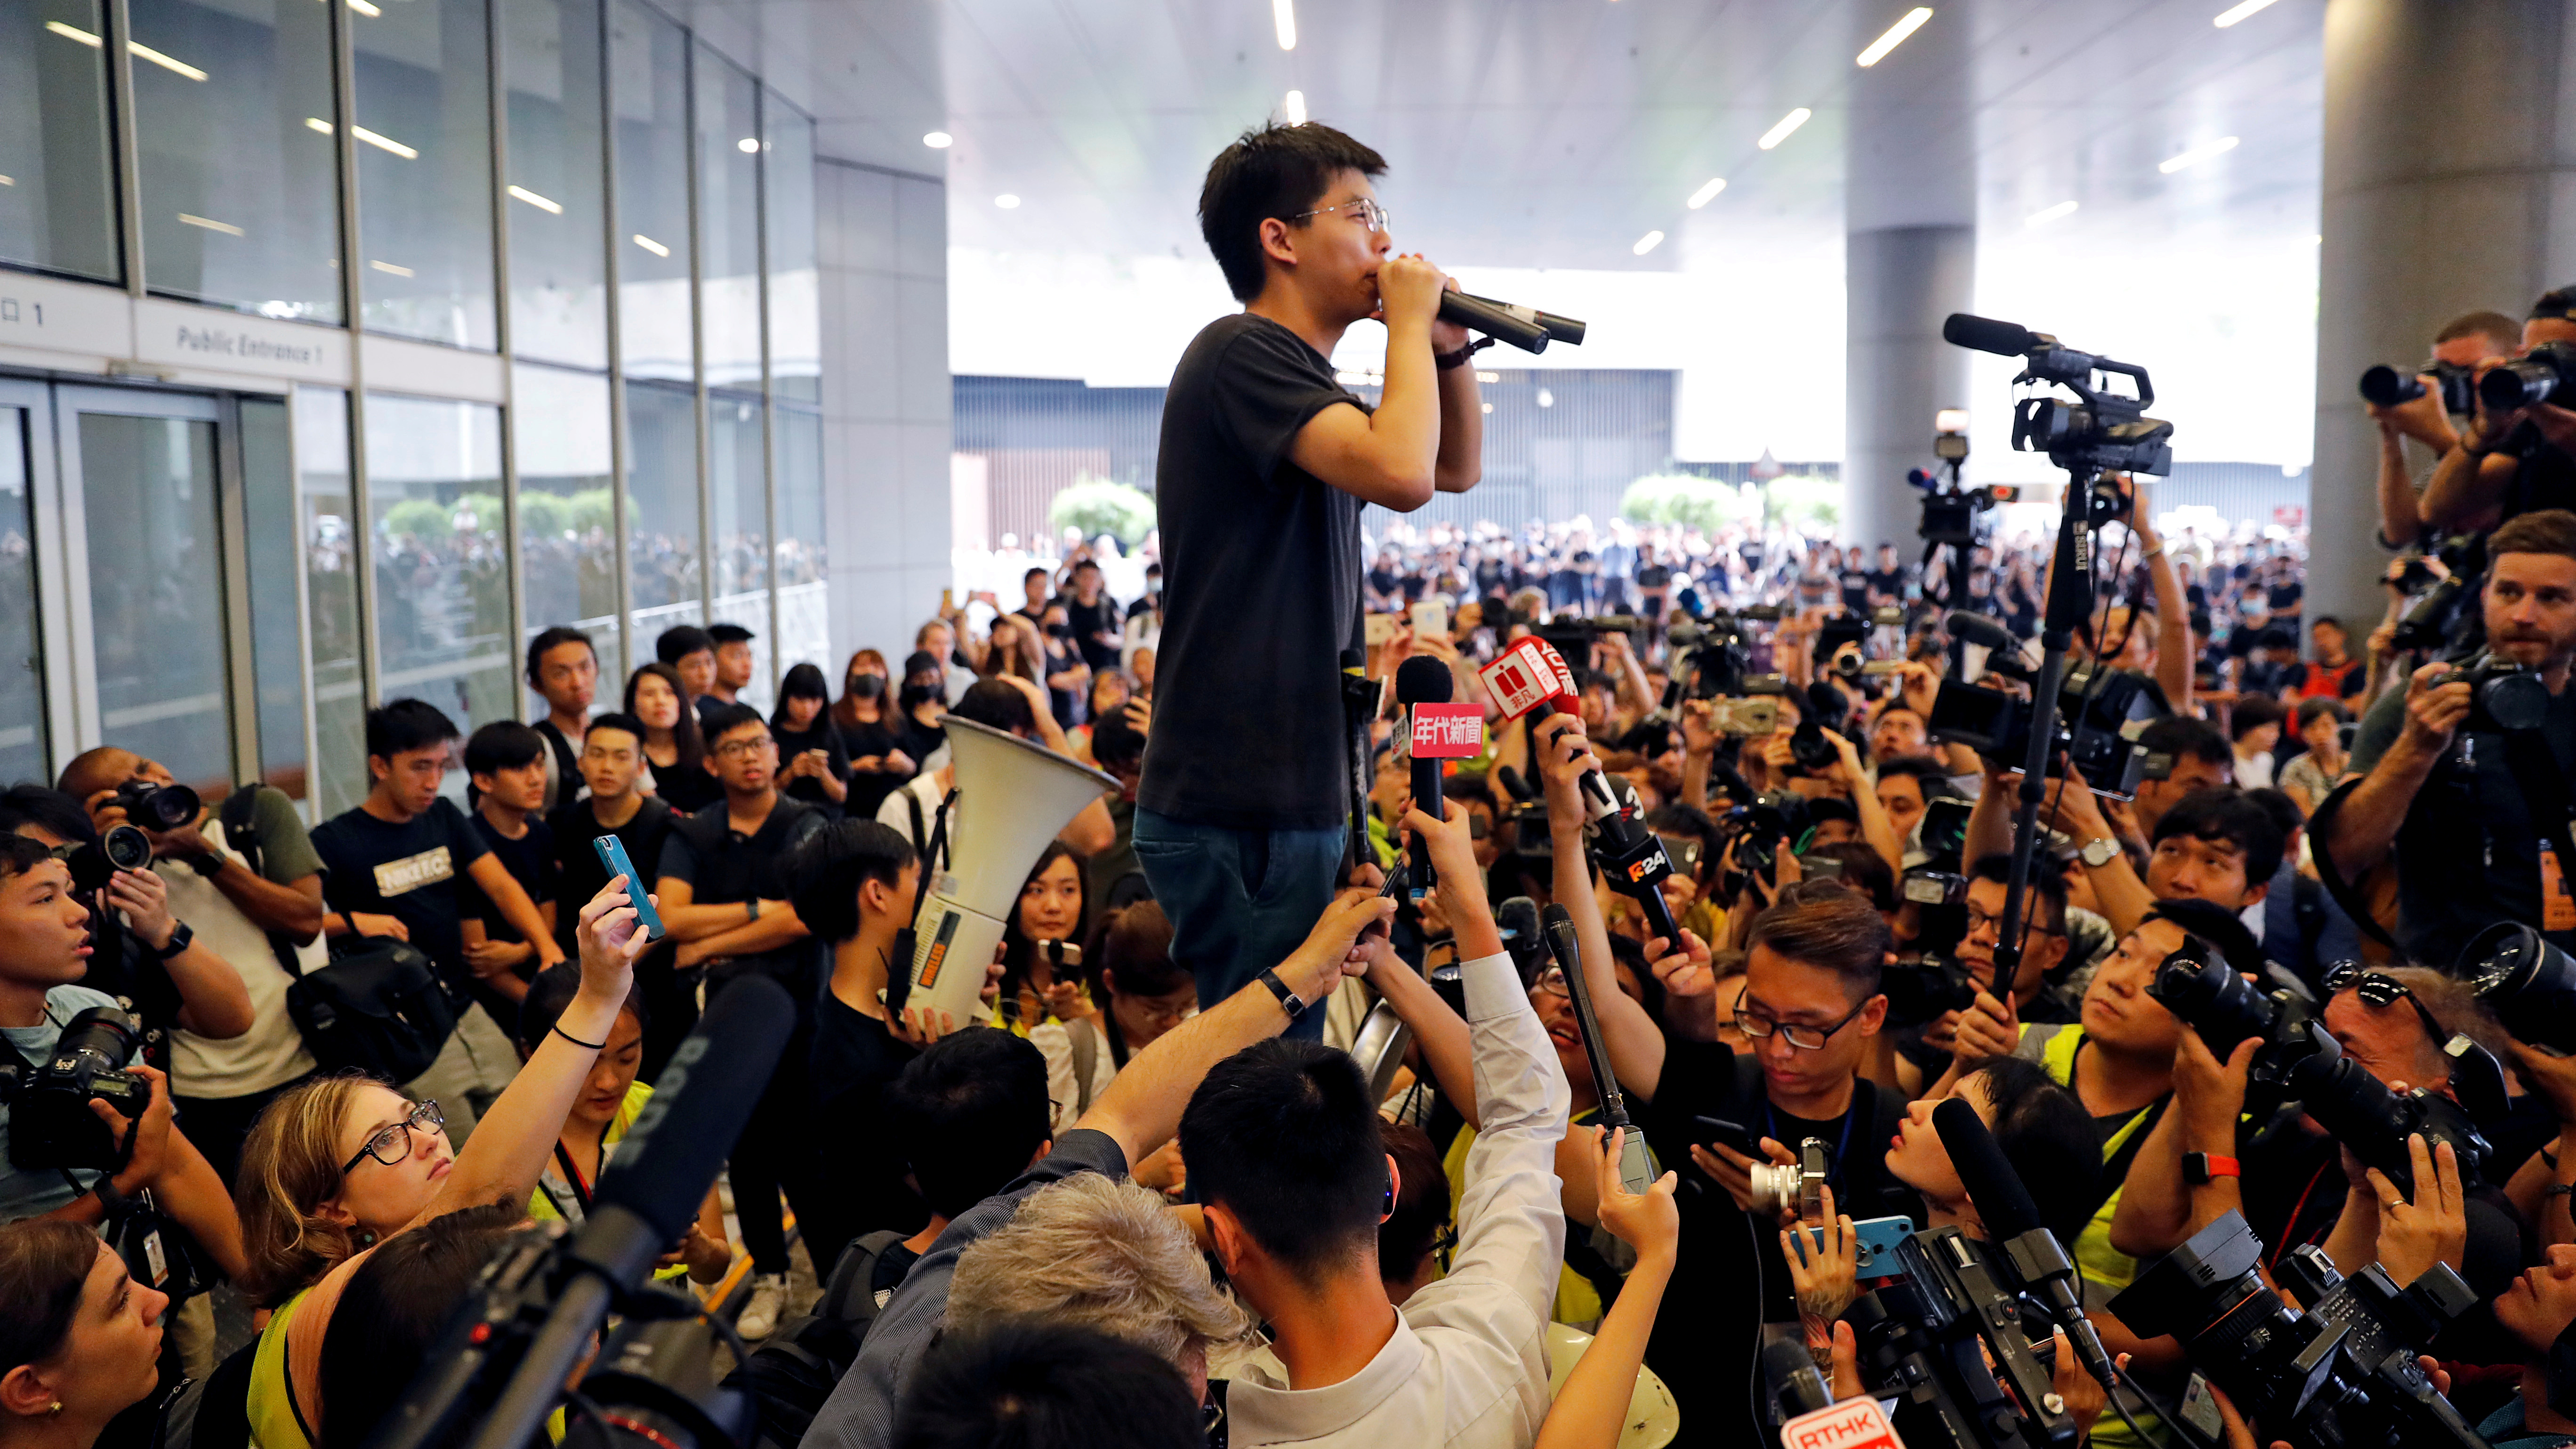 Hong Kong Activist Joshua Wong Is Freed, Says He Will Join Mass Protests